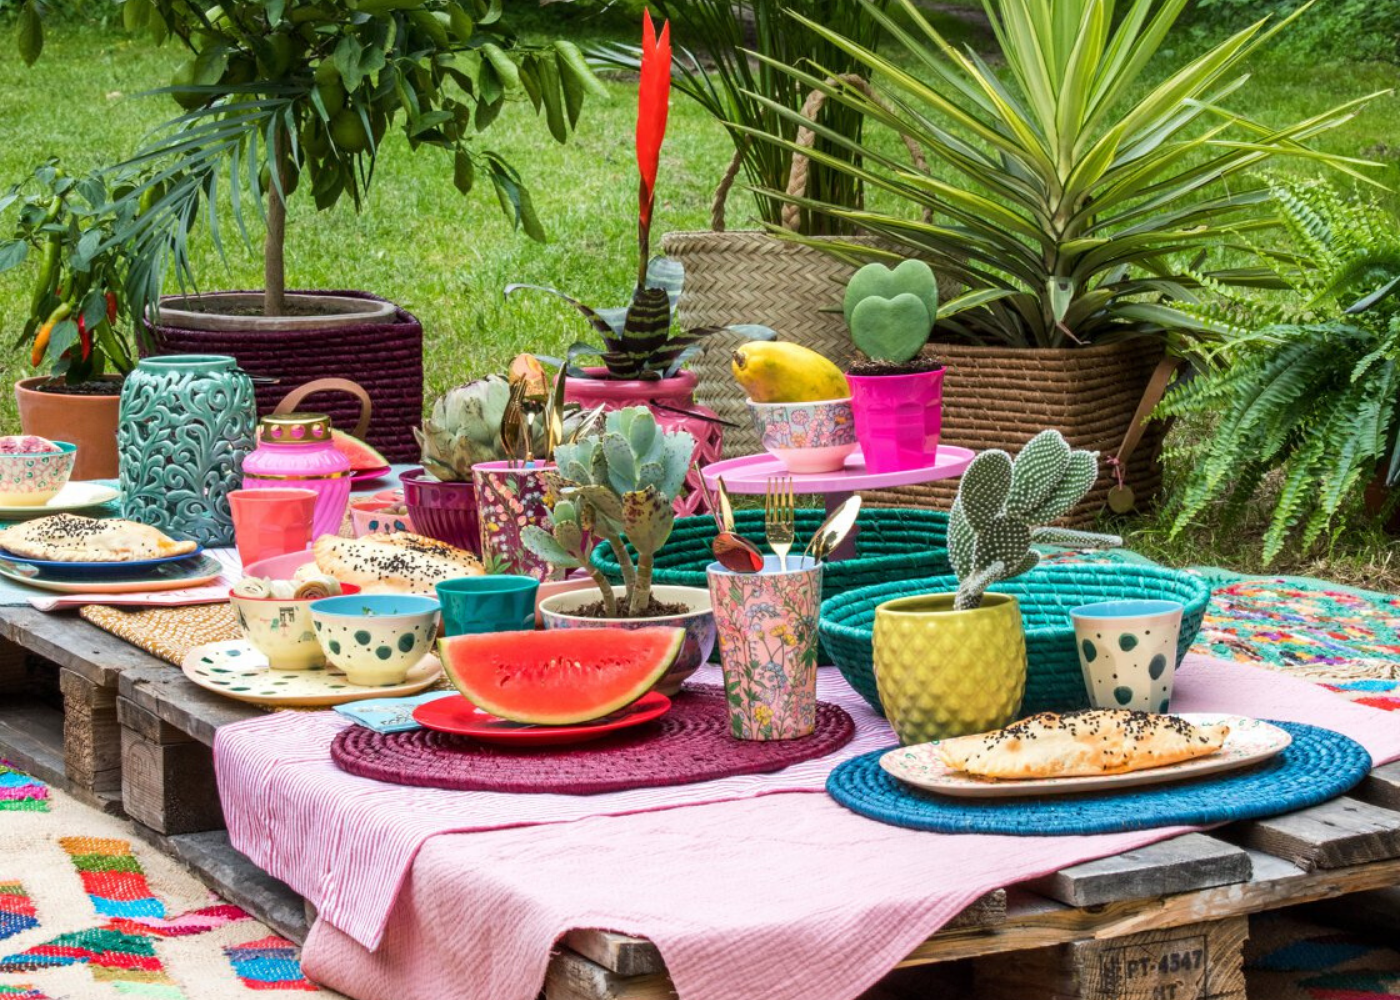 The Children's Showcase | Where to get picnic supplies, baskets, hampers and food in Singapore